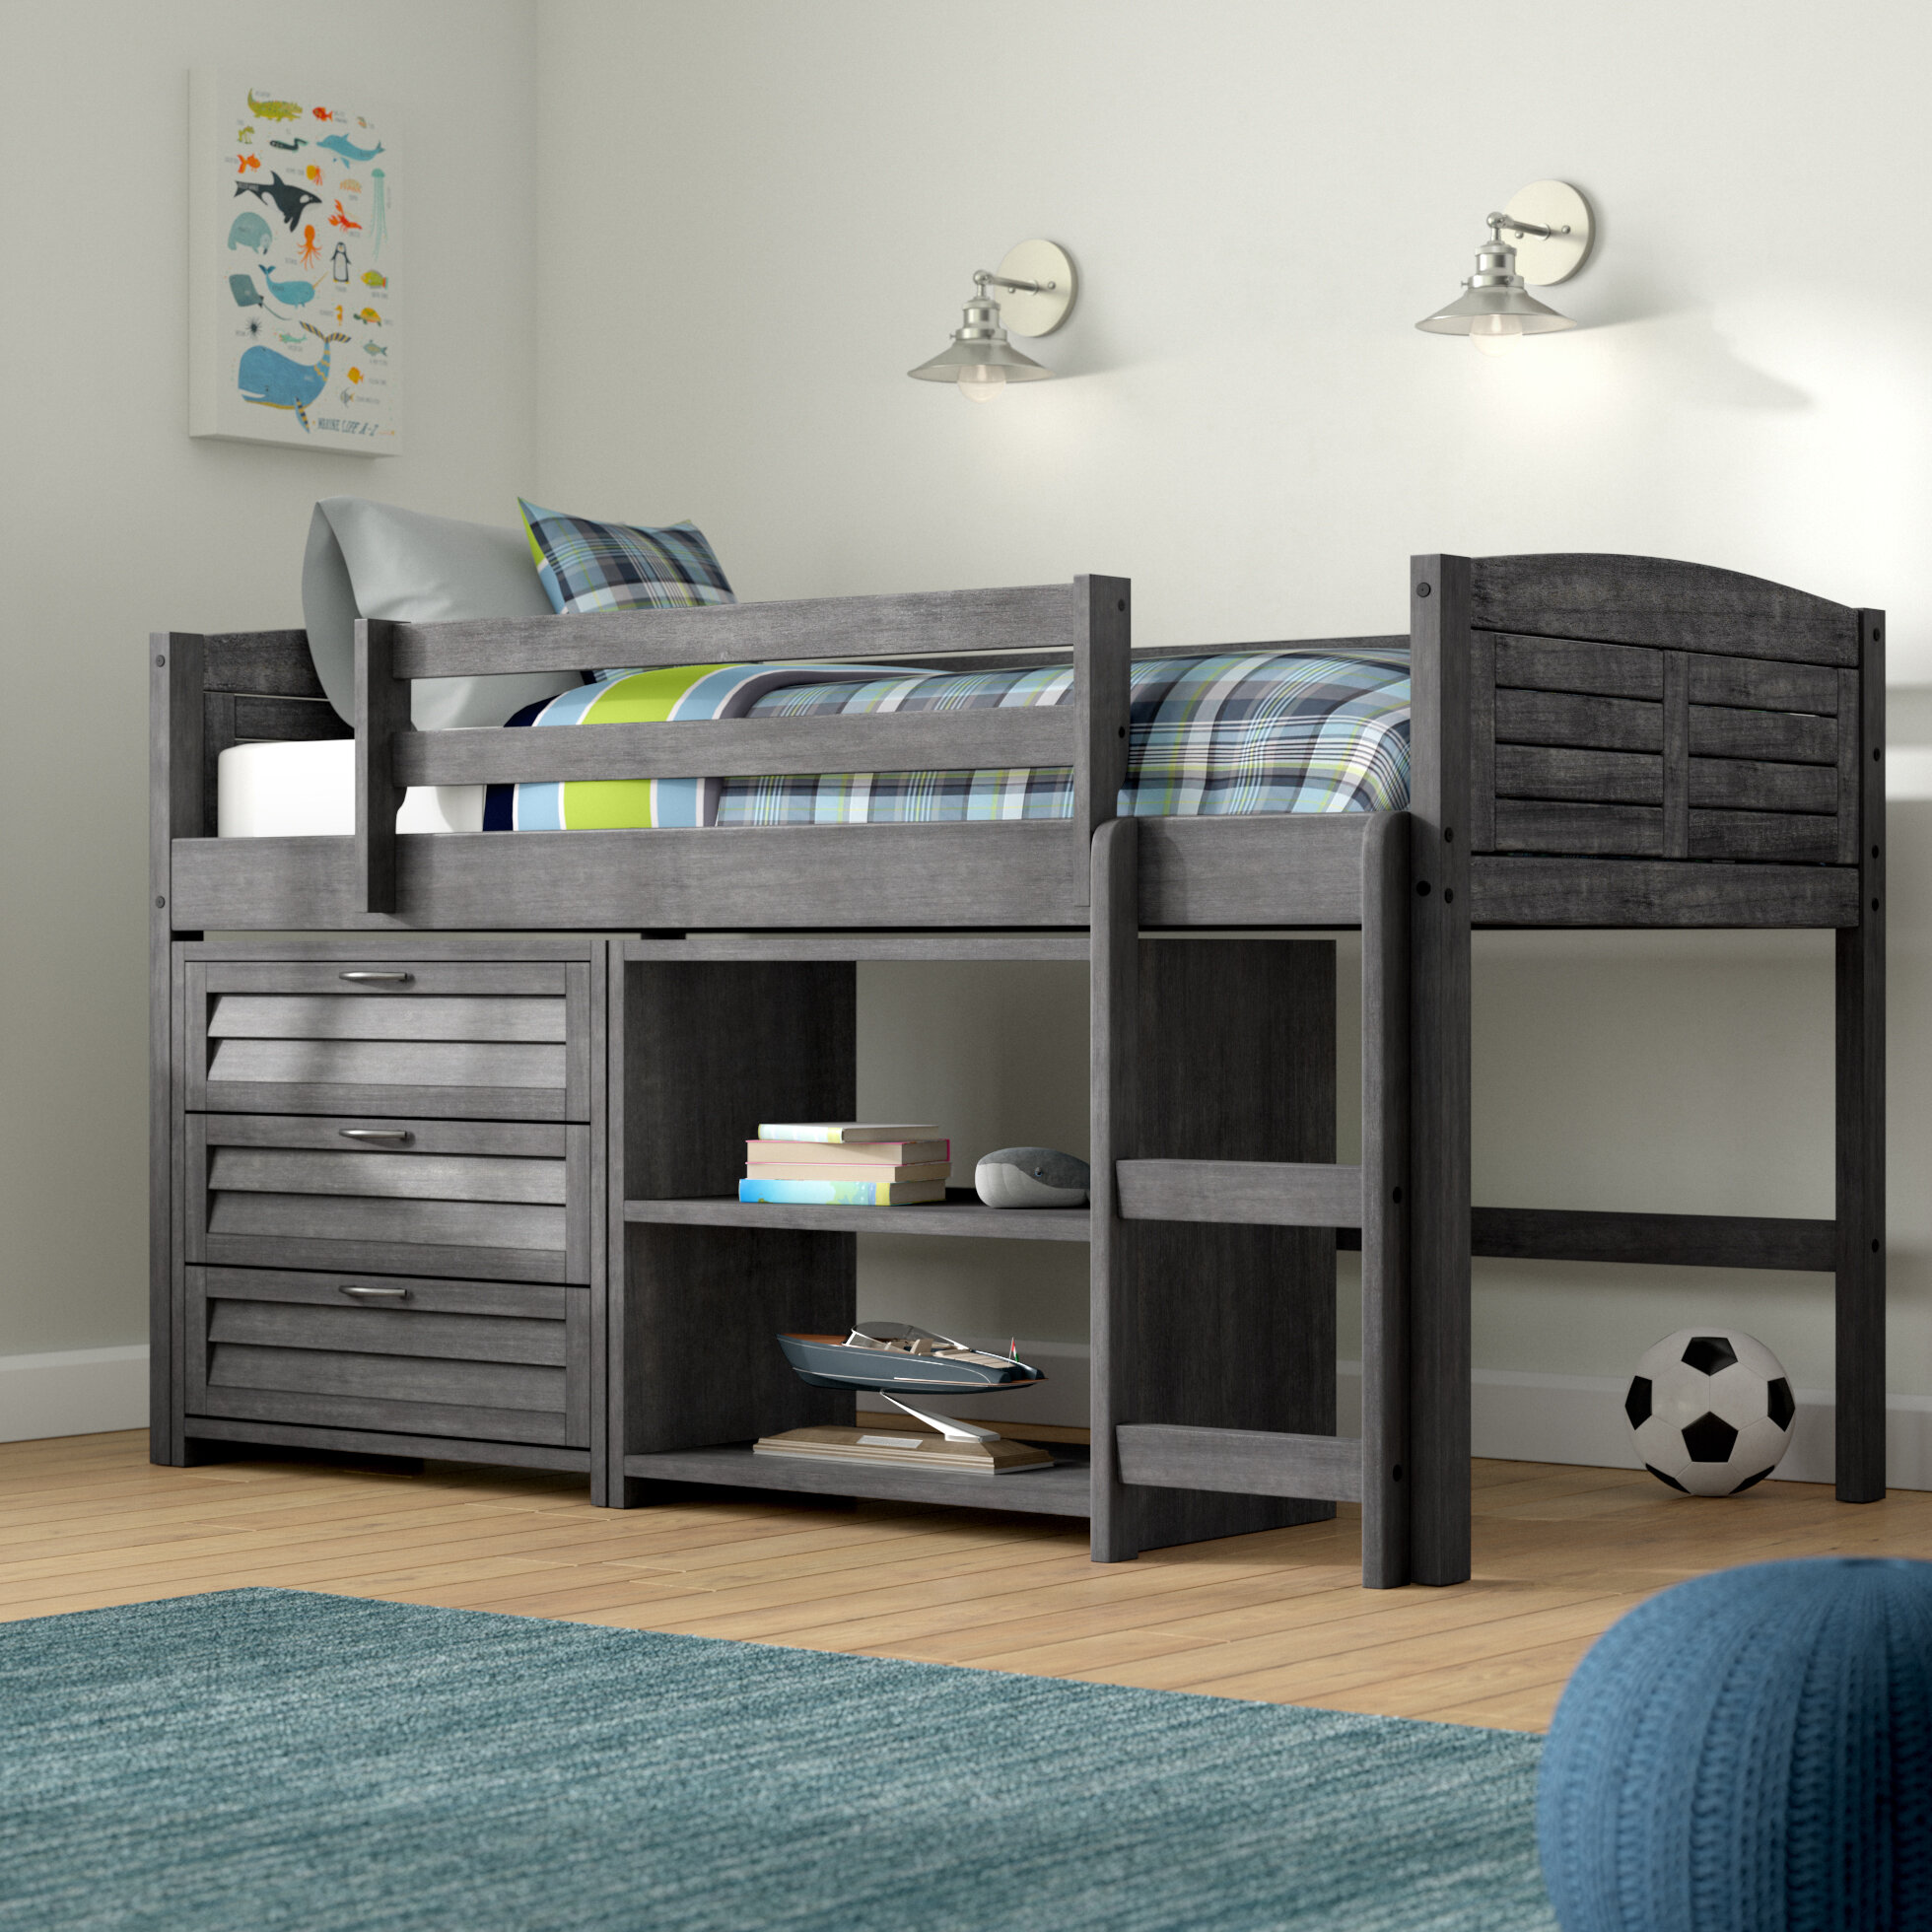 Birch Lane Evan Twin Low Loft Bed With Storage Reviews Wayfair - Hideout-furniture-slips-into-the-wall-to-provide-you-more-space